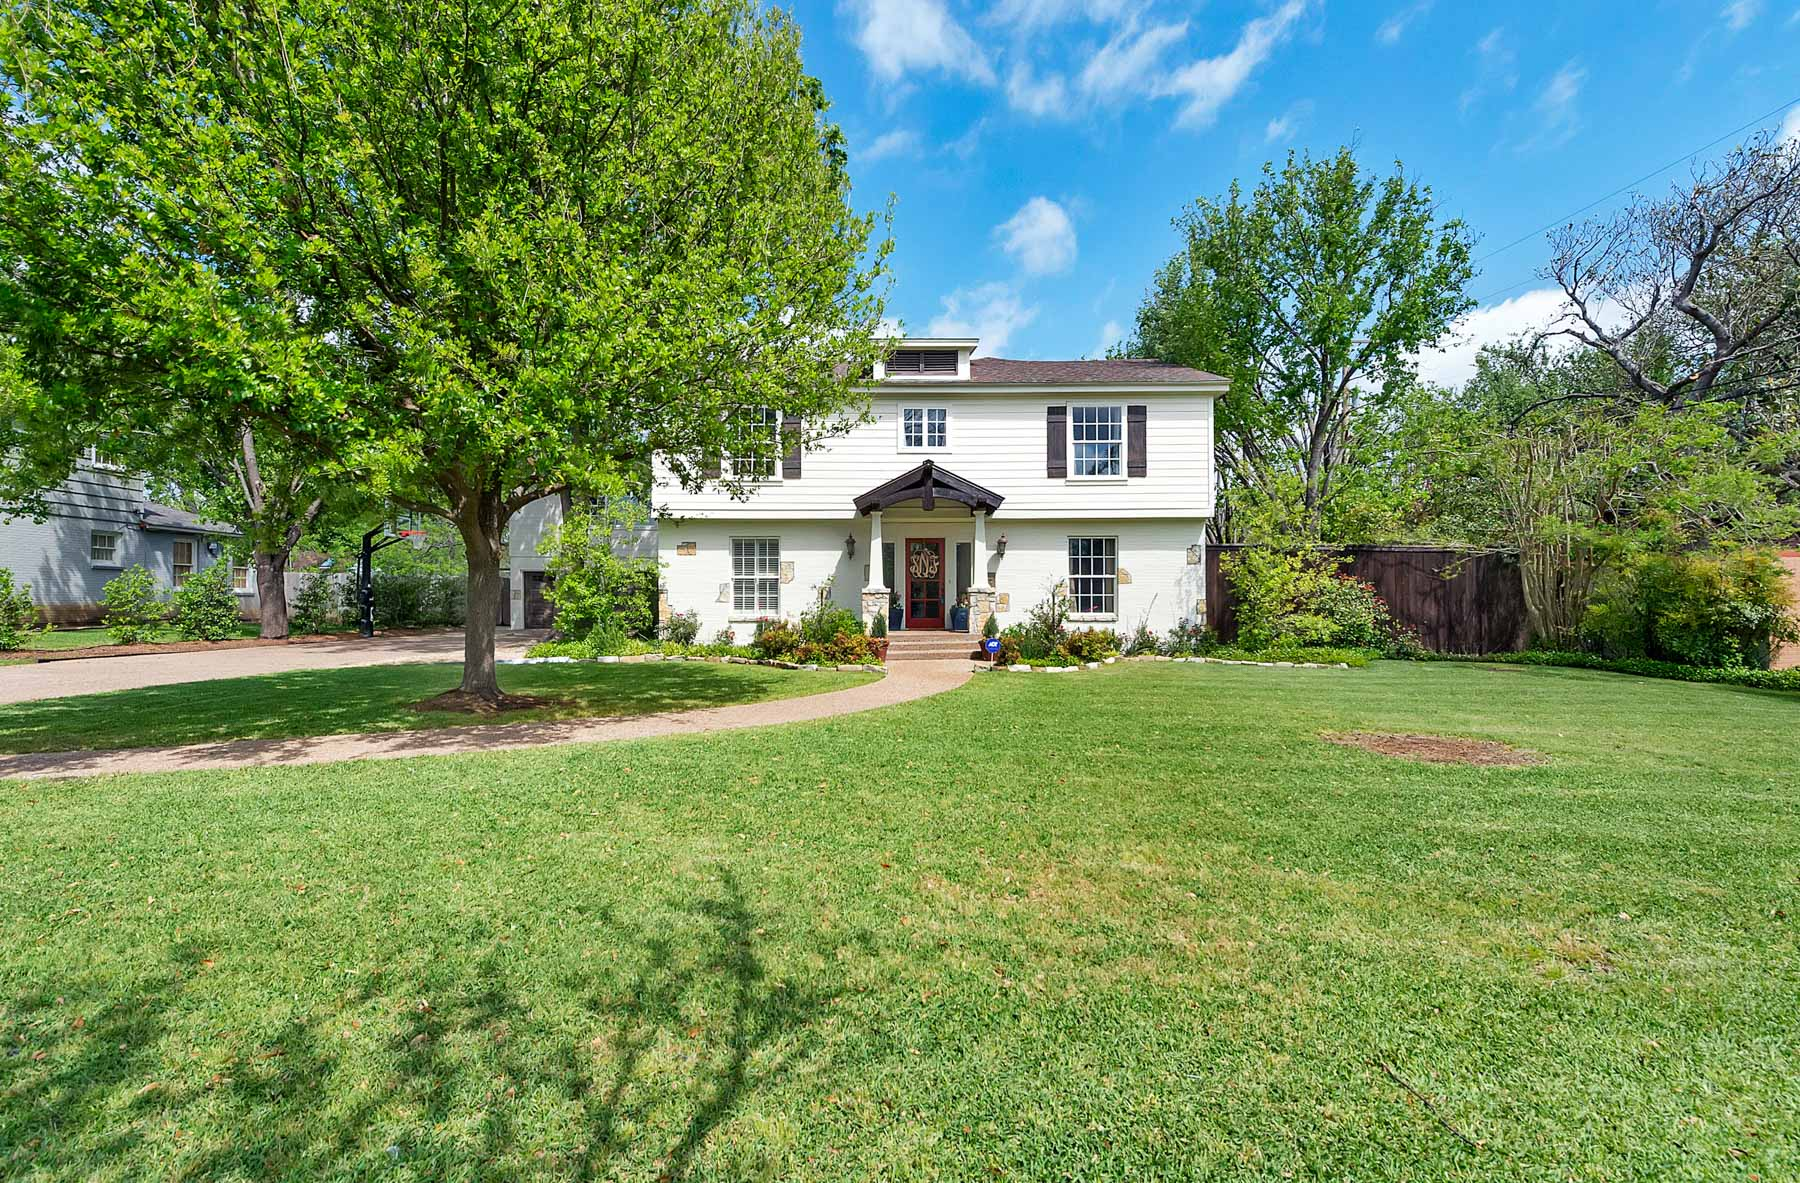 Single Family Home for Sale at Colonial, Traditional, Ridglea 6304 Greenway Road Fort Worth, Texas, 76116 United States